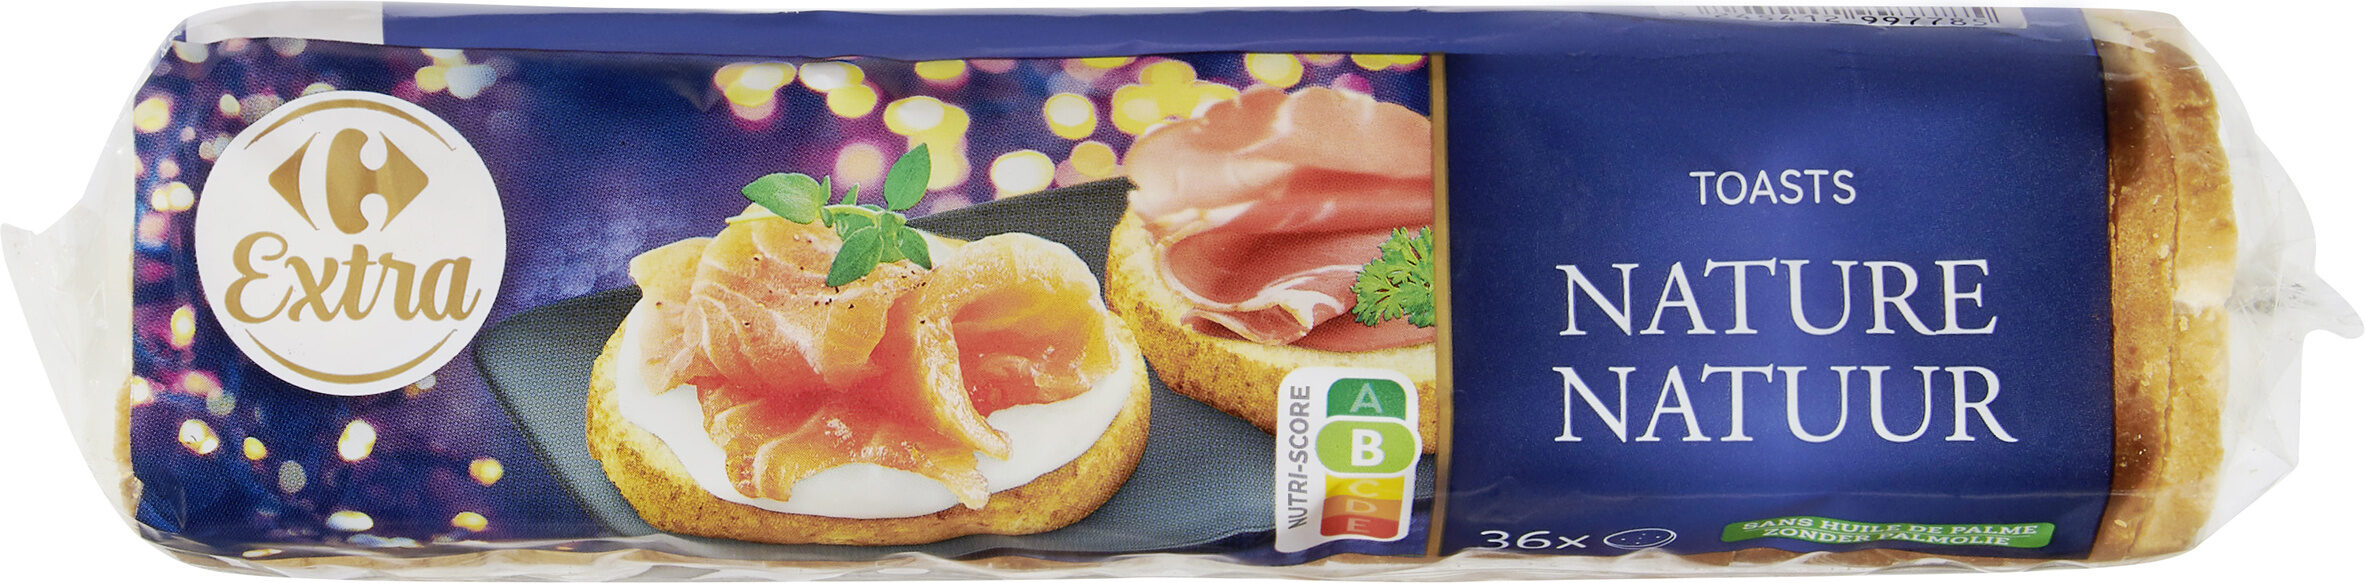 Toasts Nature - Product - fr